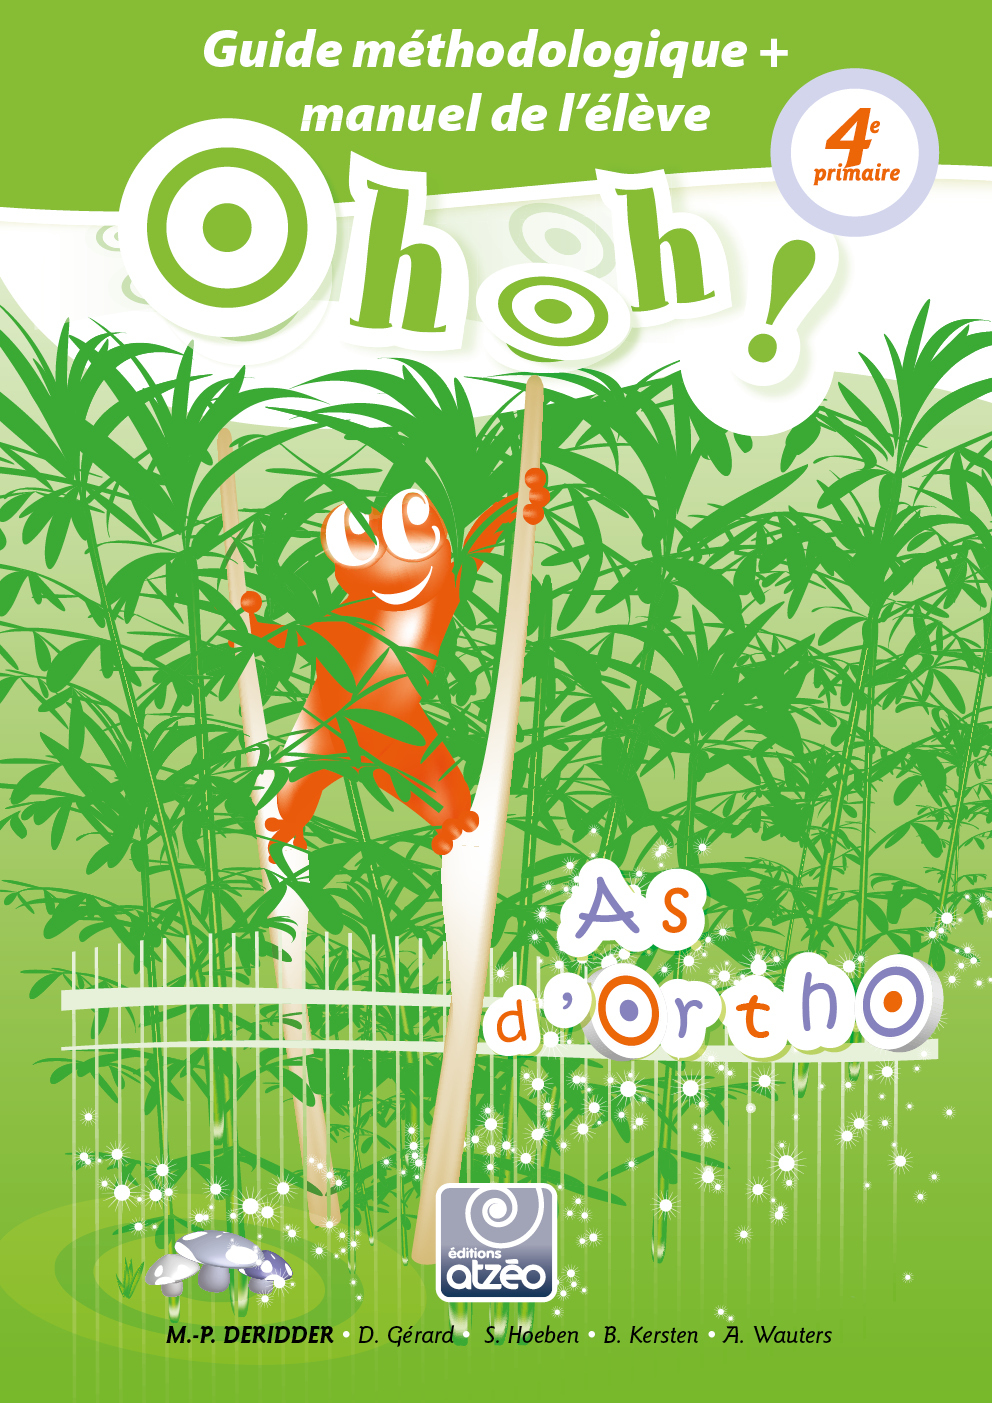 OHOH AS D'ORTHO 4E PRIMAIRE_GUIDE + MANUEL